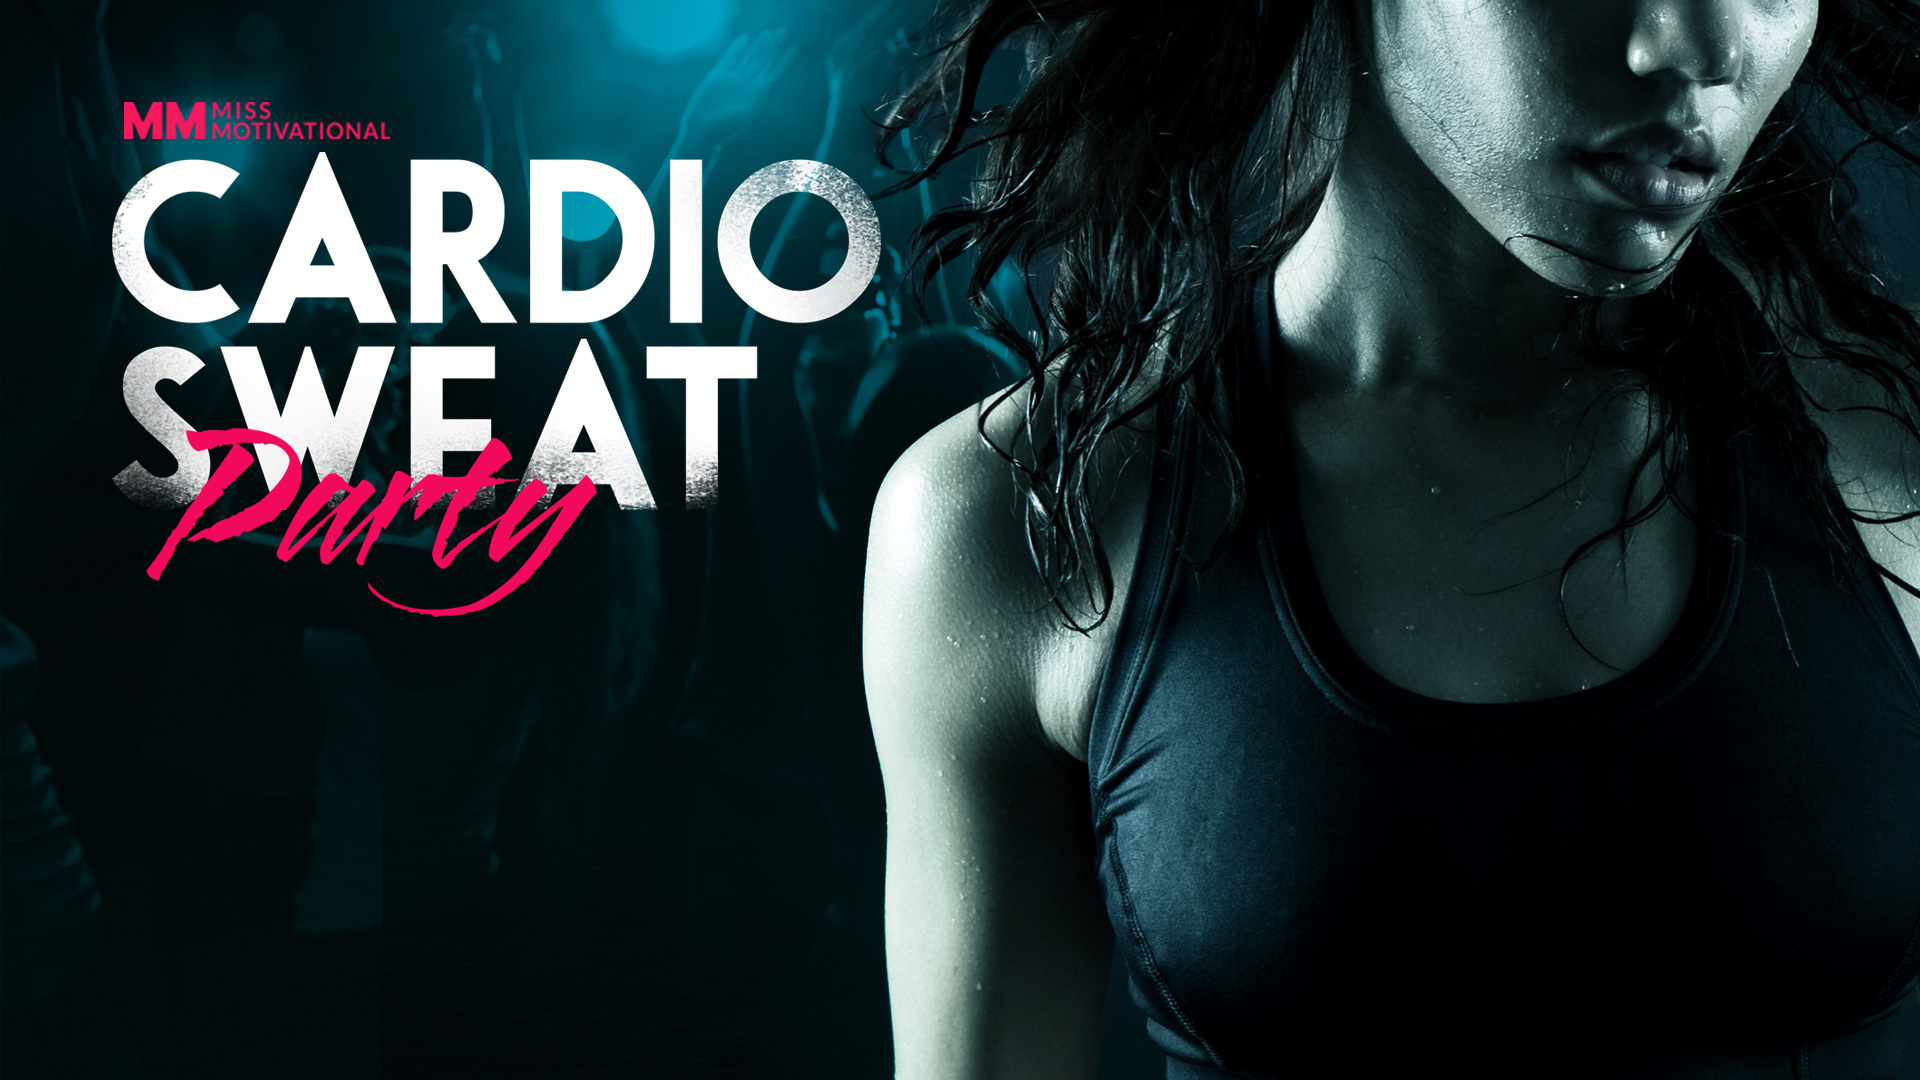 Cardio Sweat Party